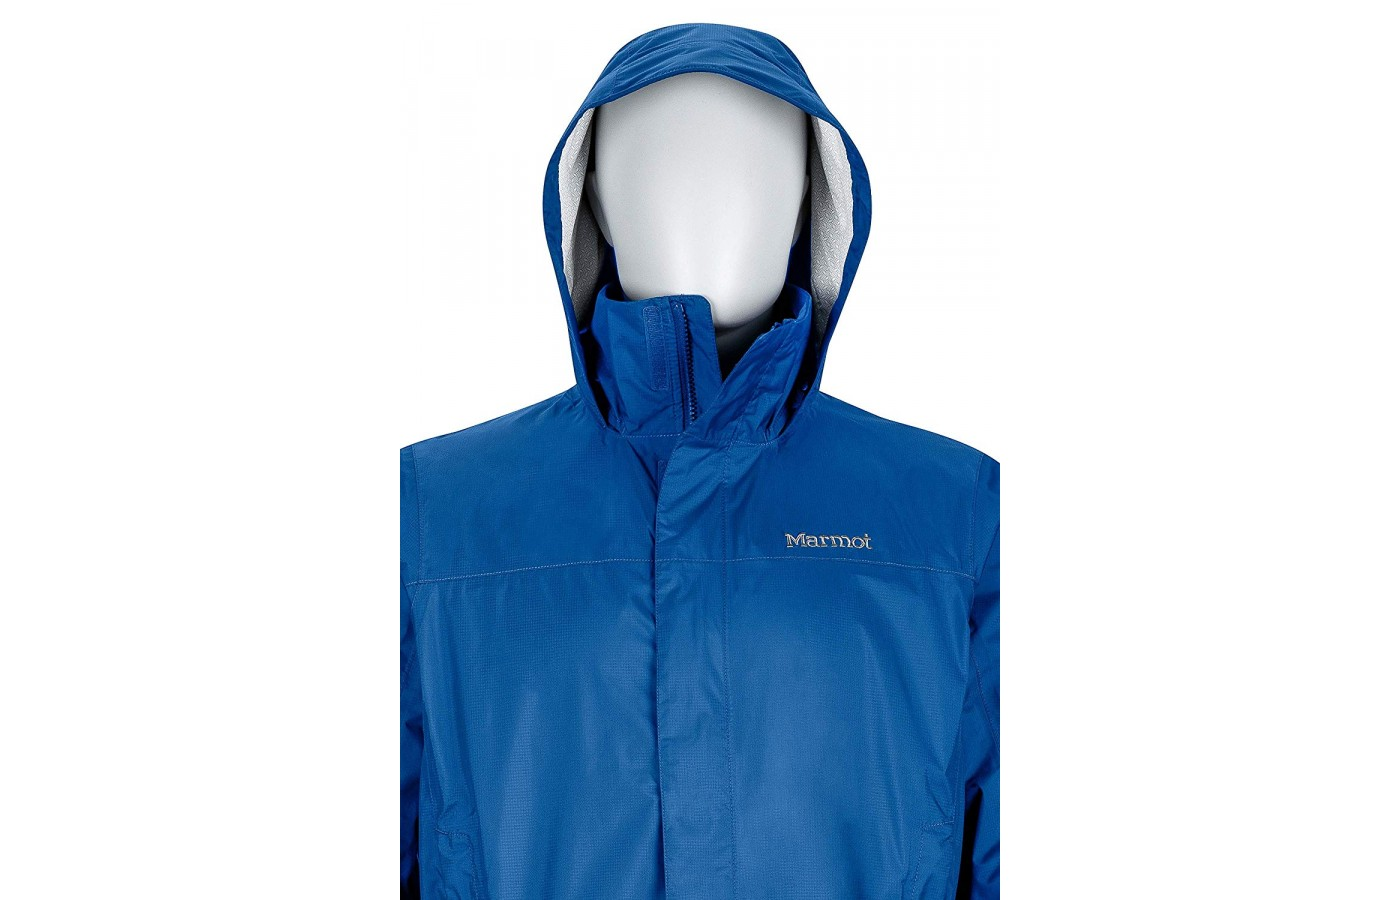 The rain jacket hood has two adjustable elastic cords around the face.